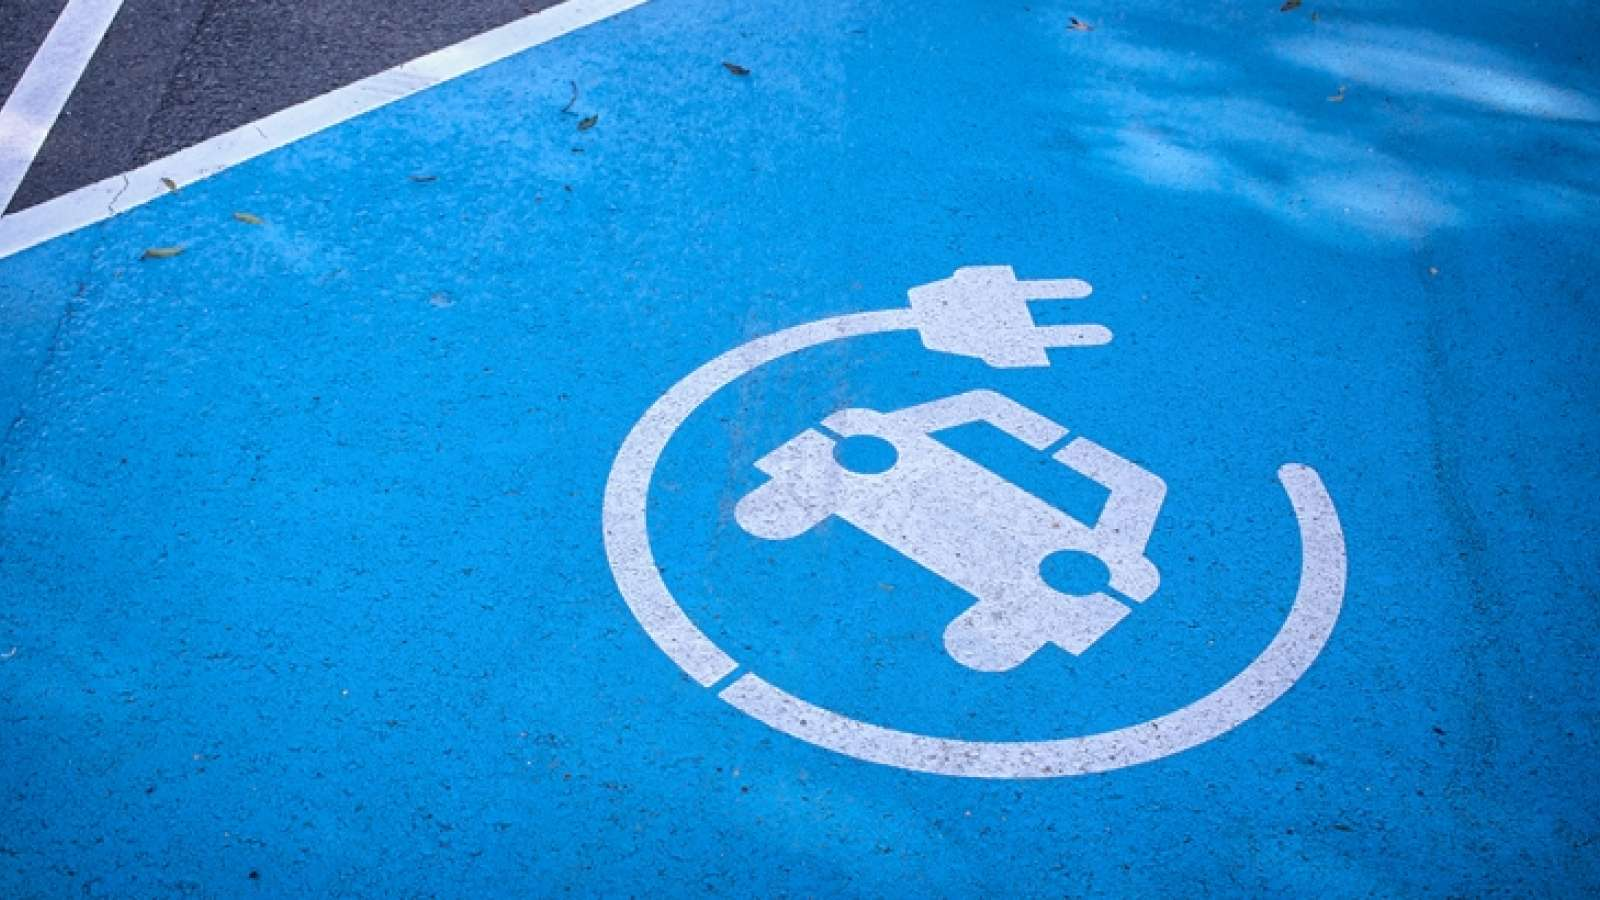 a blue painted parking spot designated as a charging station